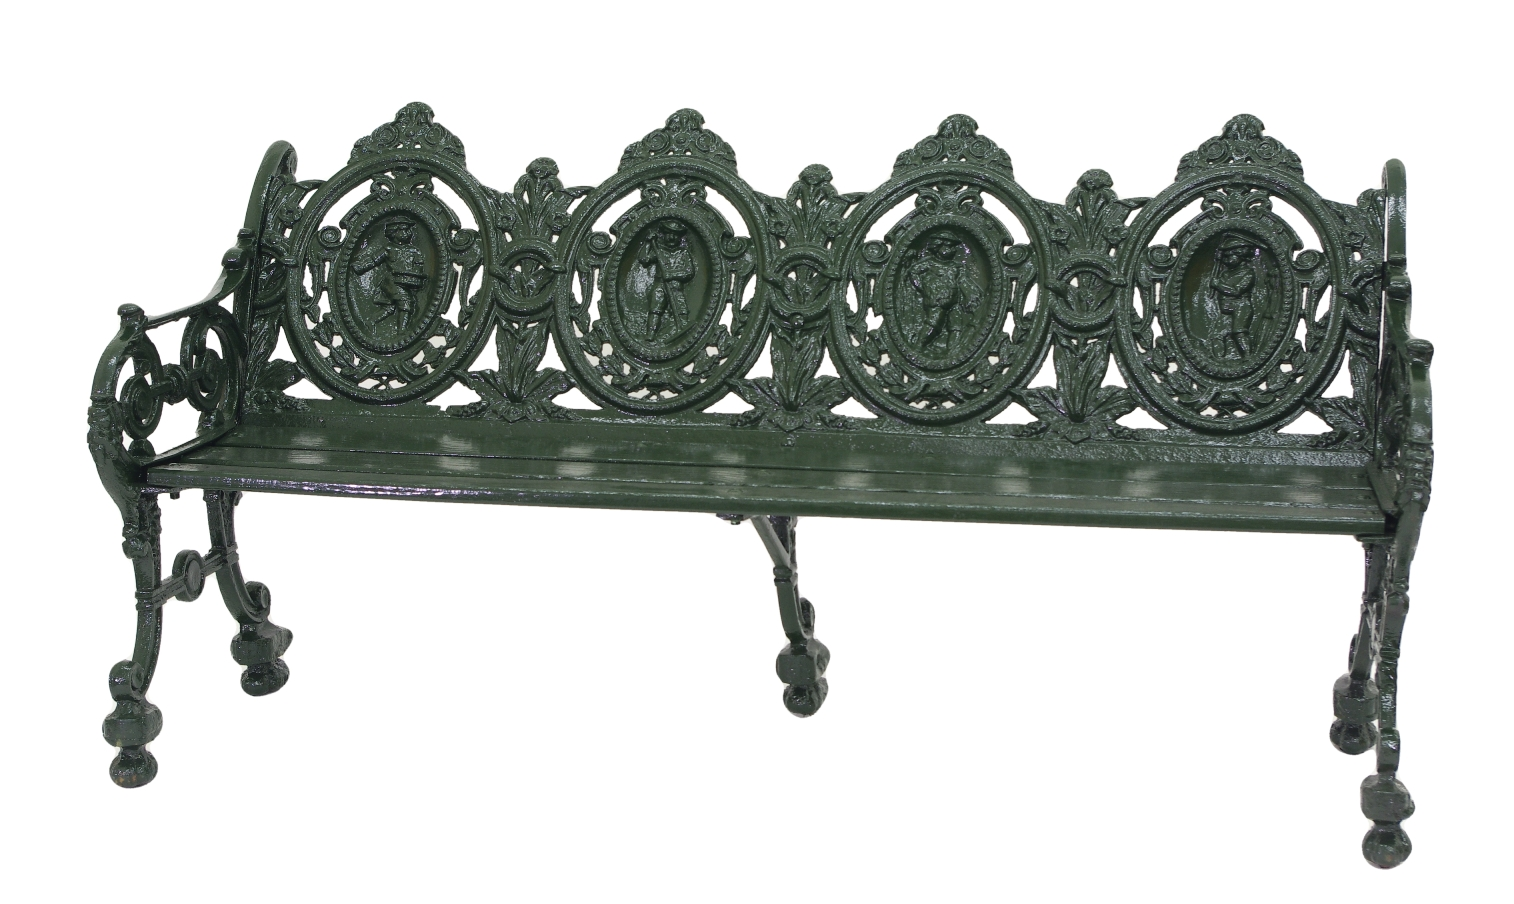 Cast Iron Garden Bench, 1880